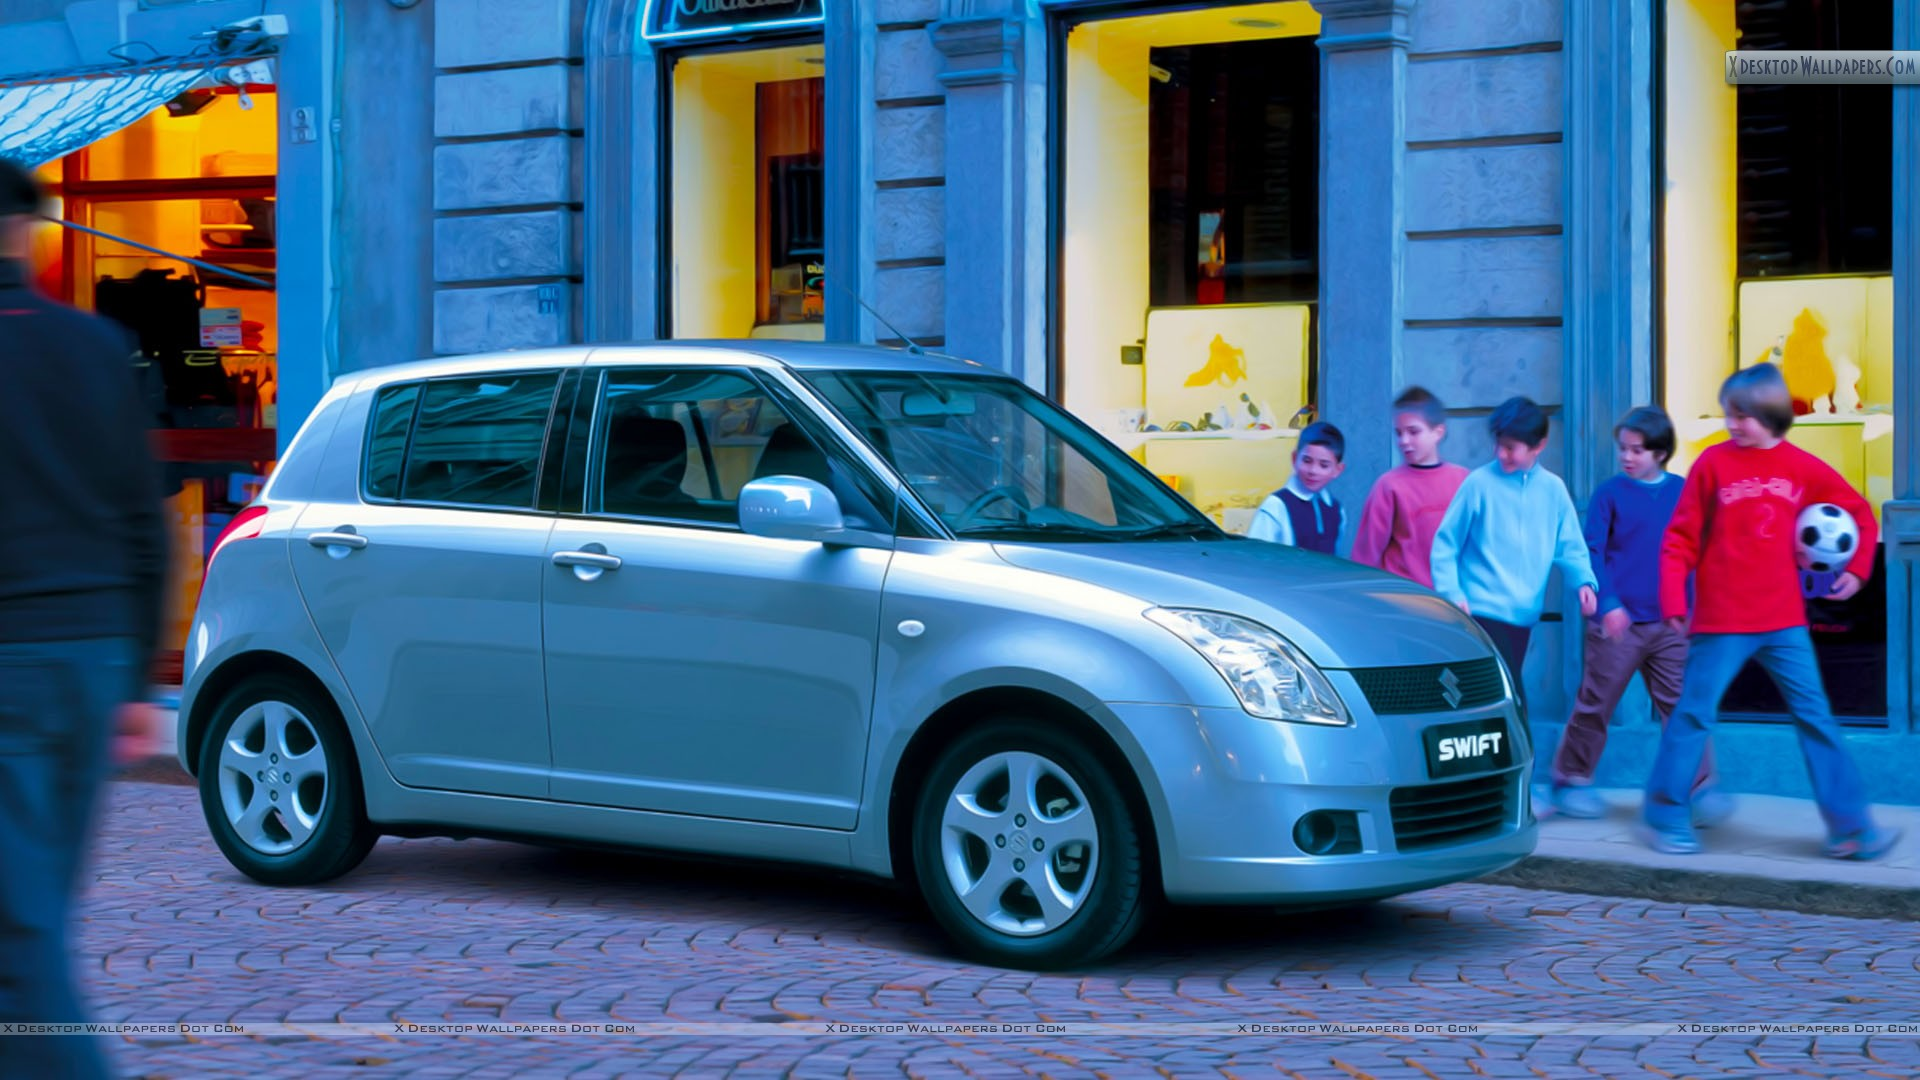 SUZUKI SWIFT green